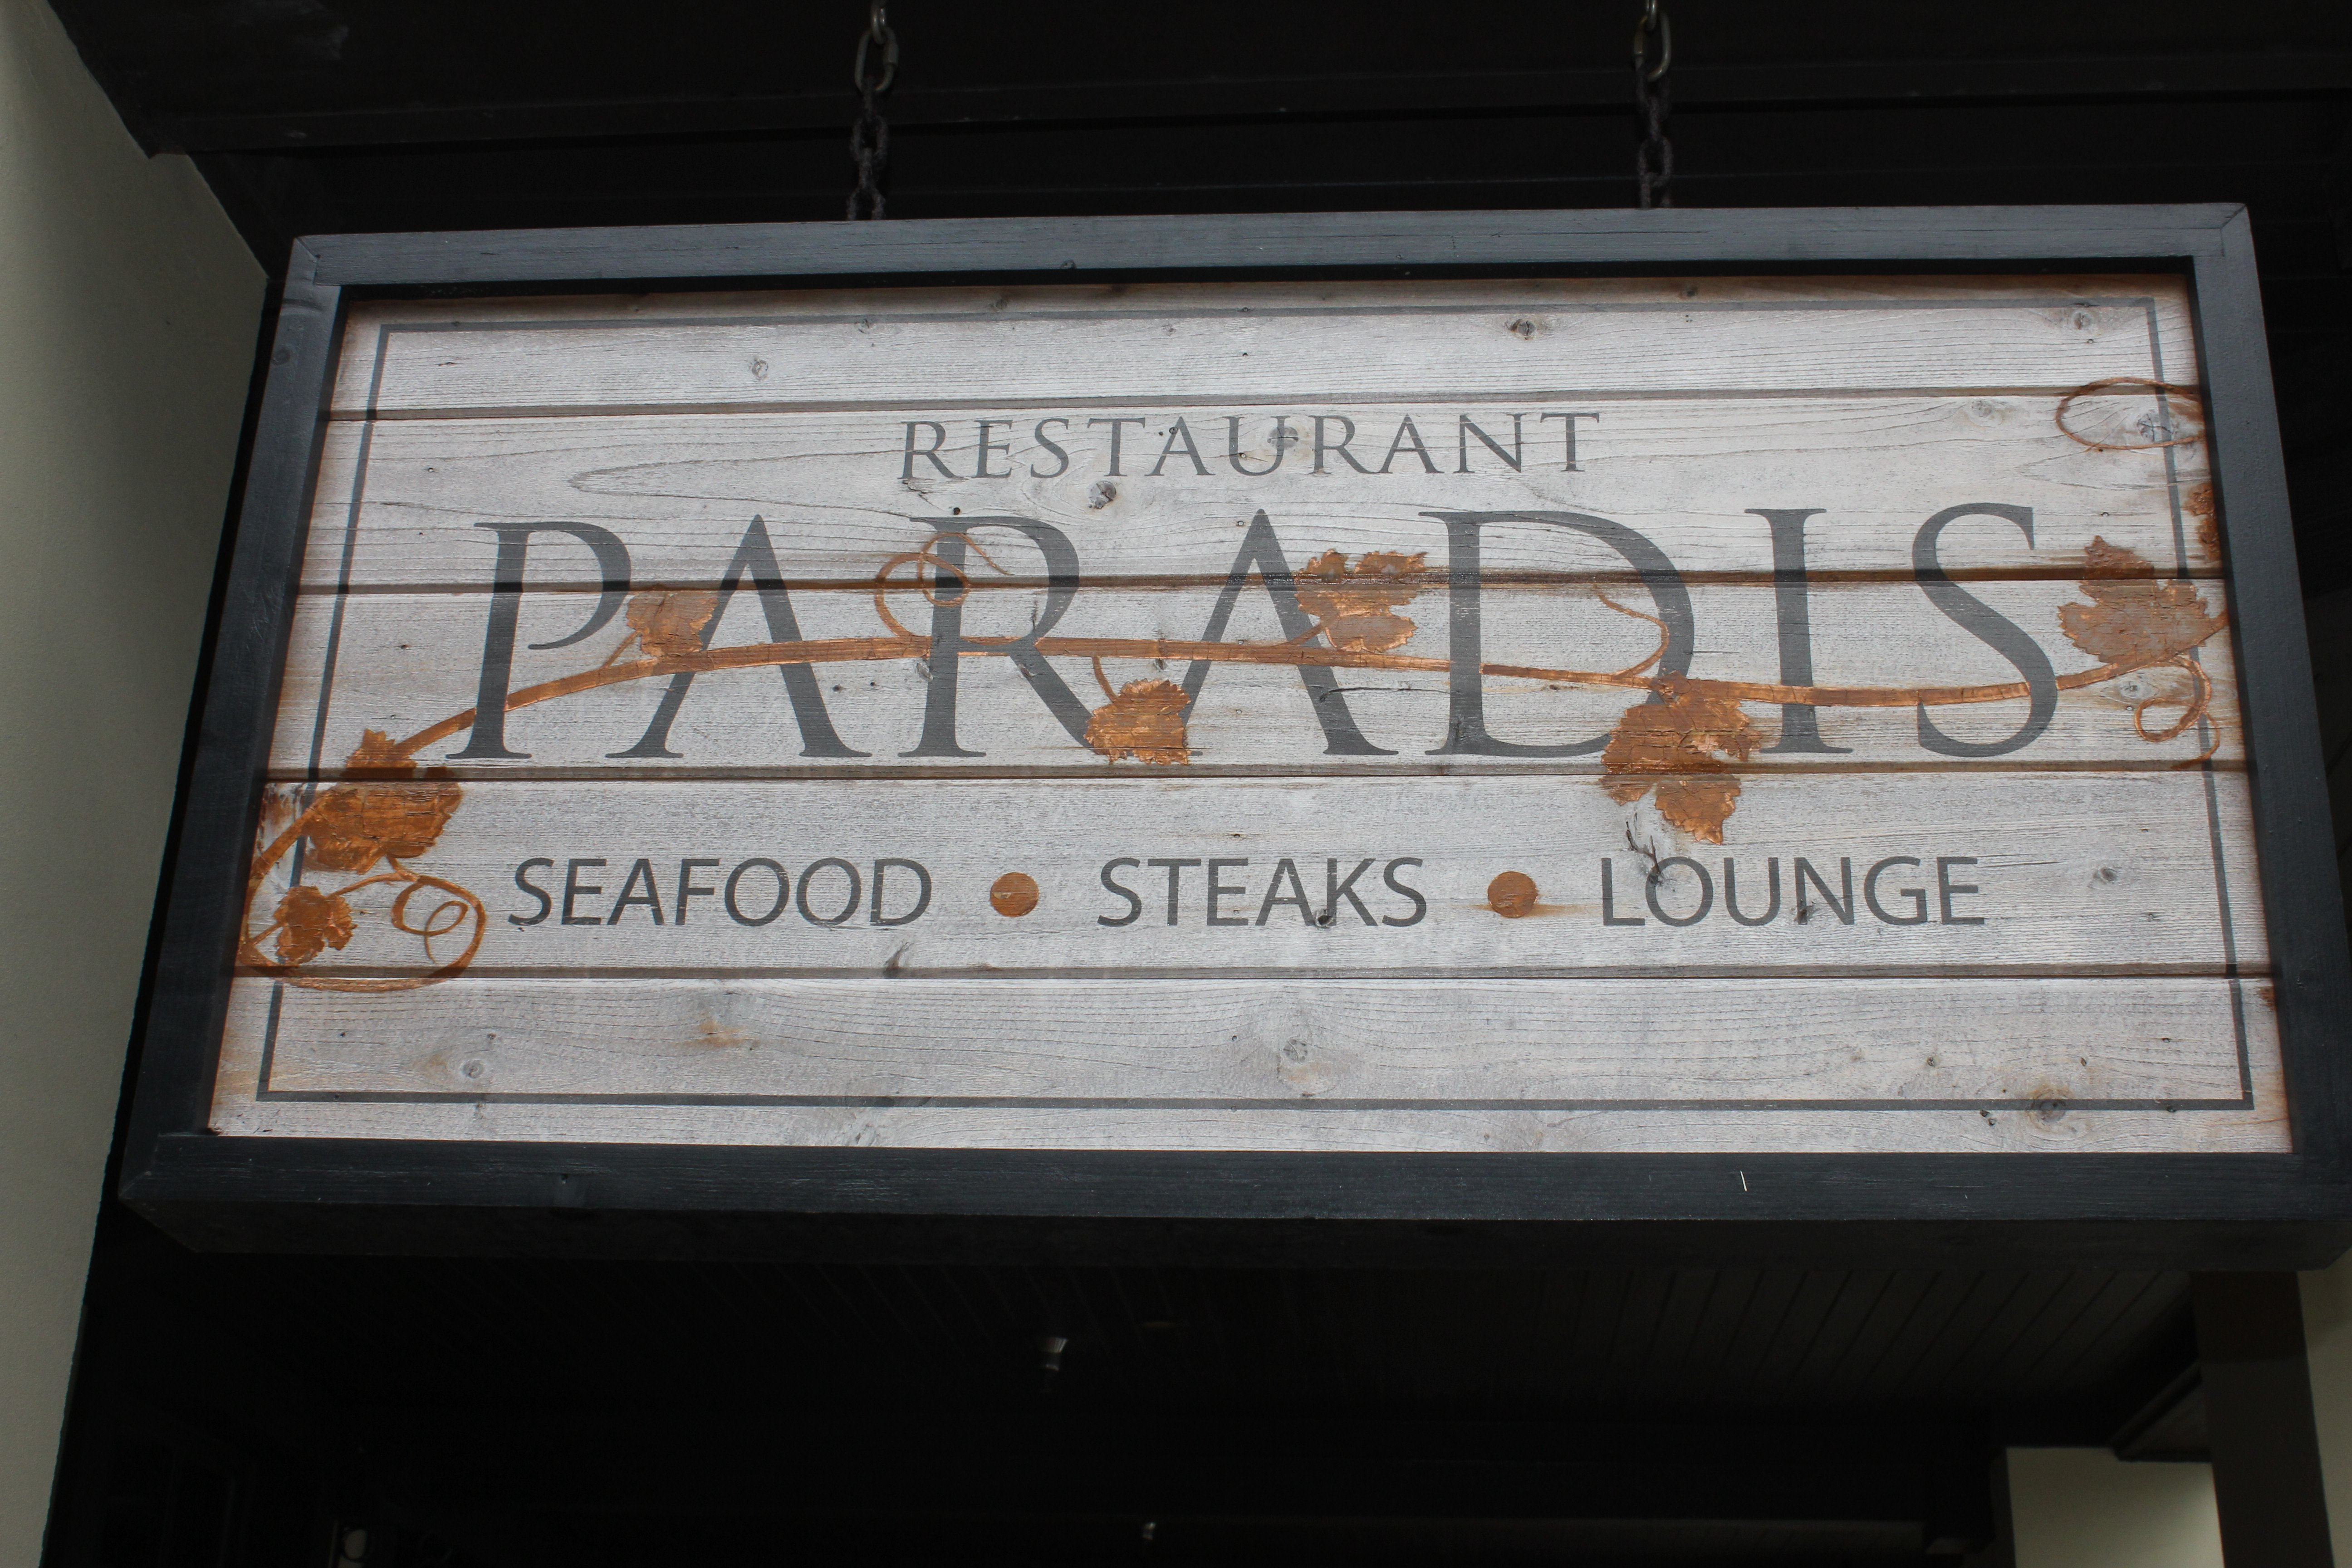 Paradis 30a Food And Wine